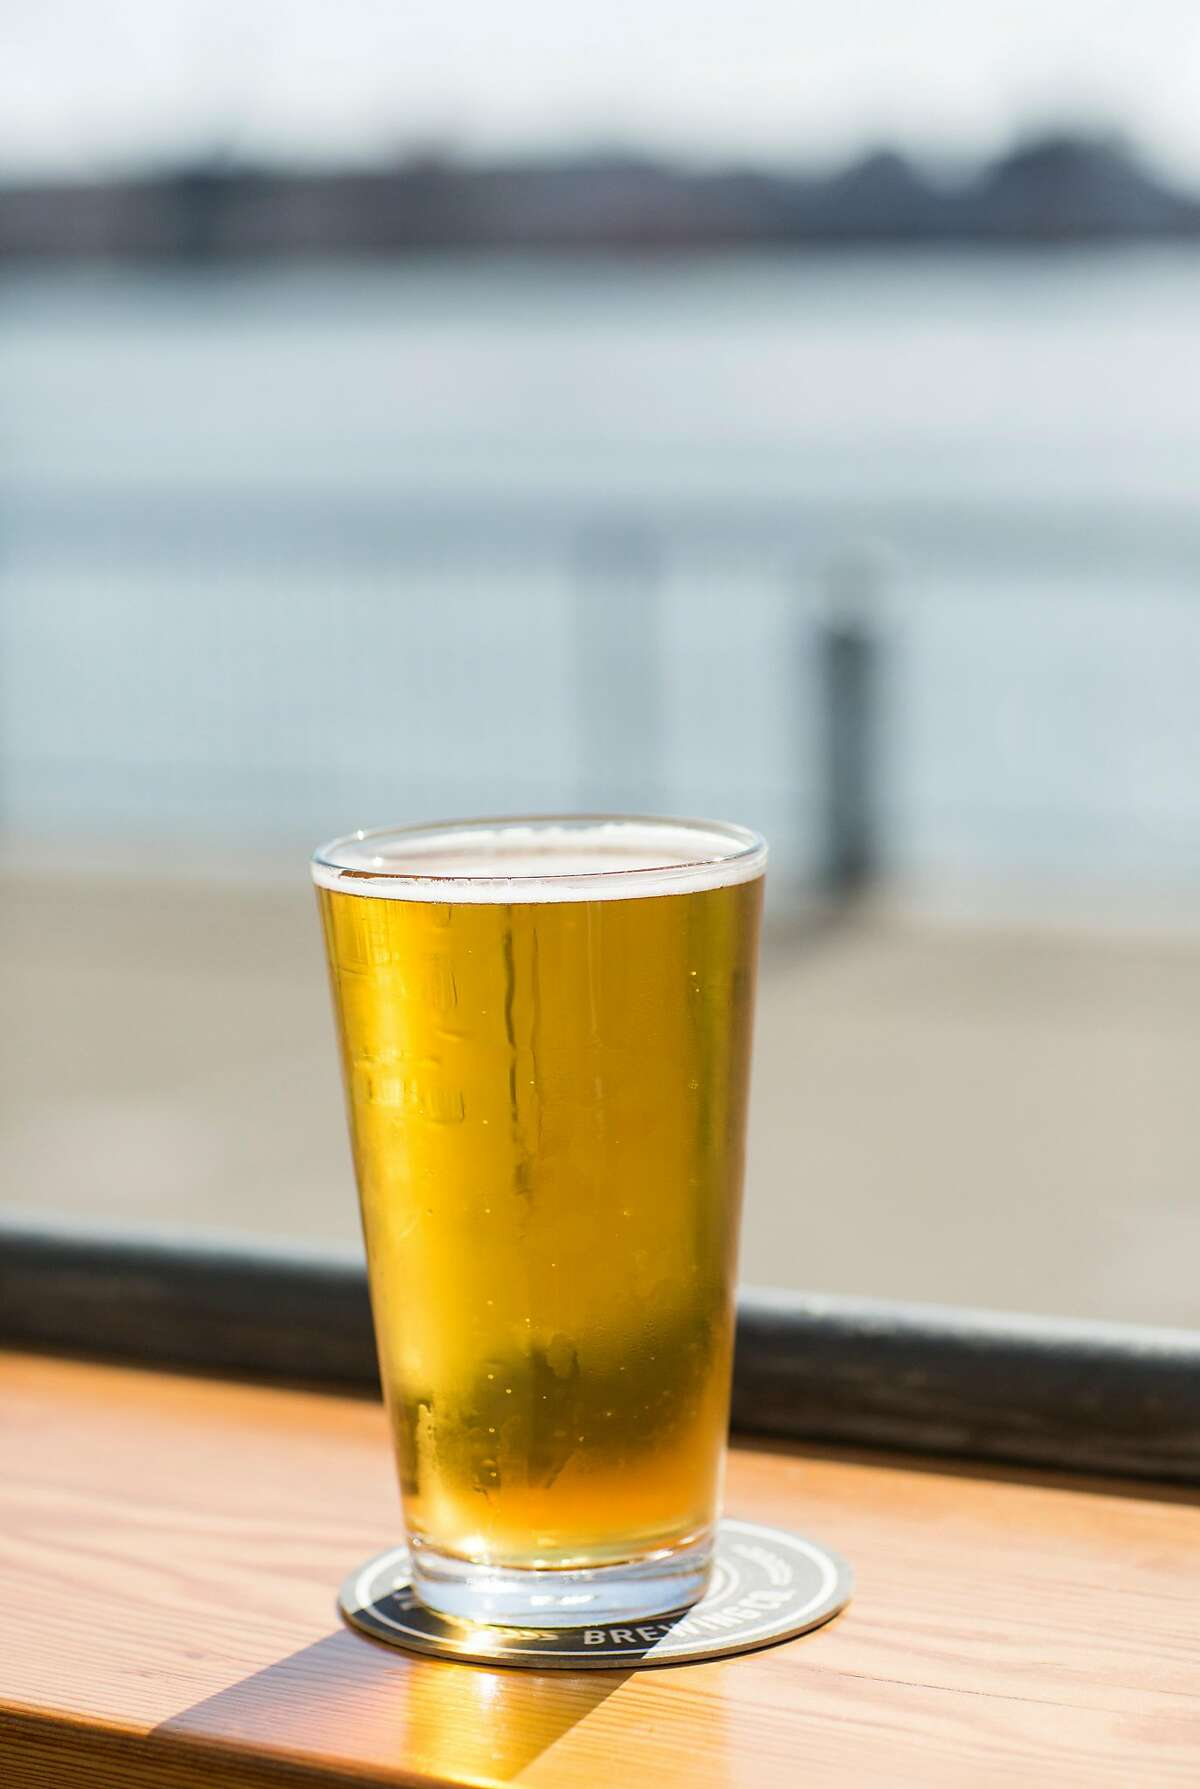 A glass of Saginaw Golden Ale, the flagship ale of Mare Island Brewing Co., is seen at their taproom in the Vallejo Ferry Building in Vallejo, Calif., on Saturday, September 30, 2017. The brewery is in the final construction stages at the historic Coal Sheds on Mare Island where where they will be doing all their brewing.